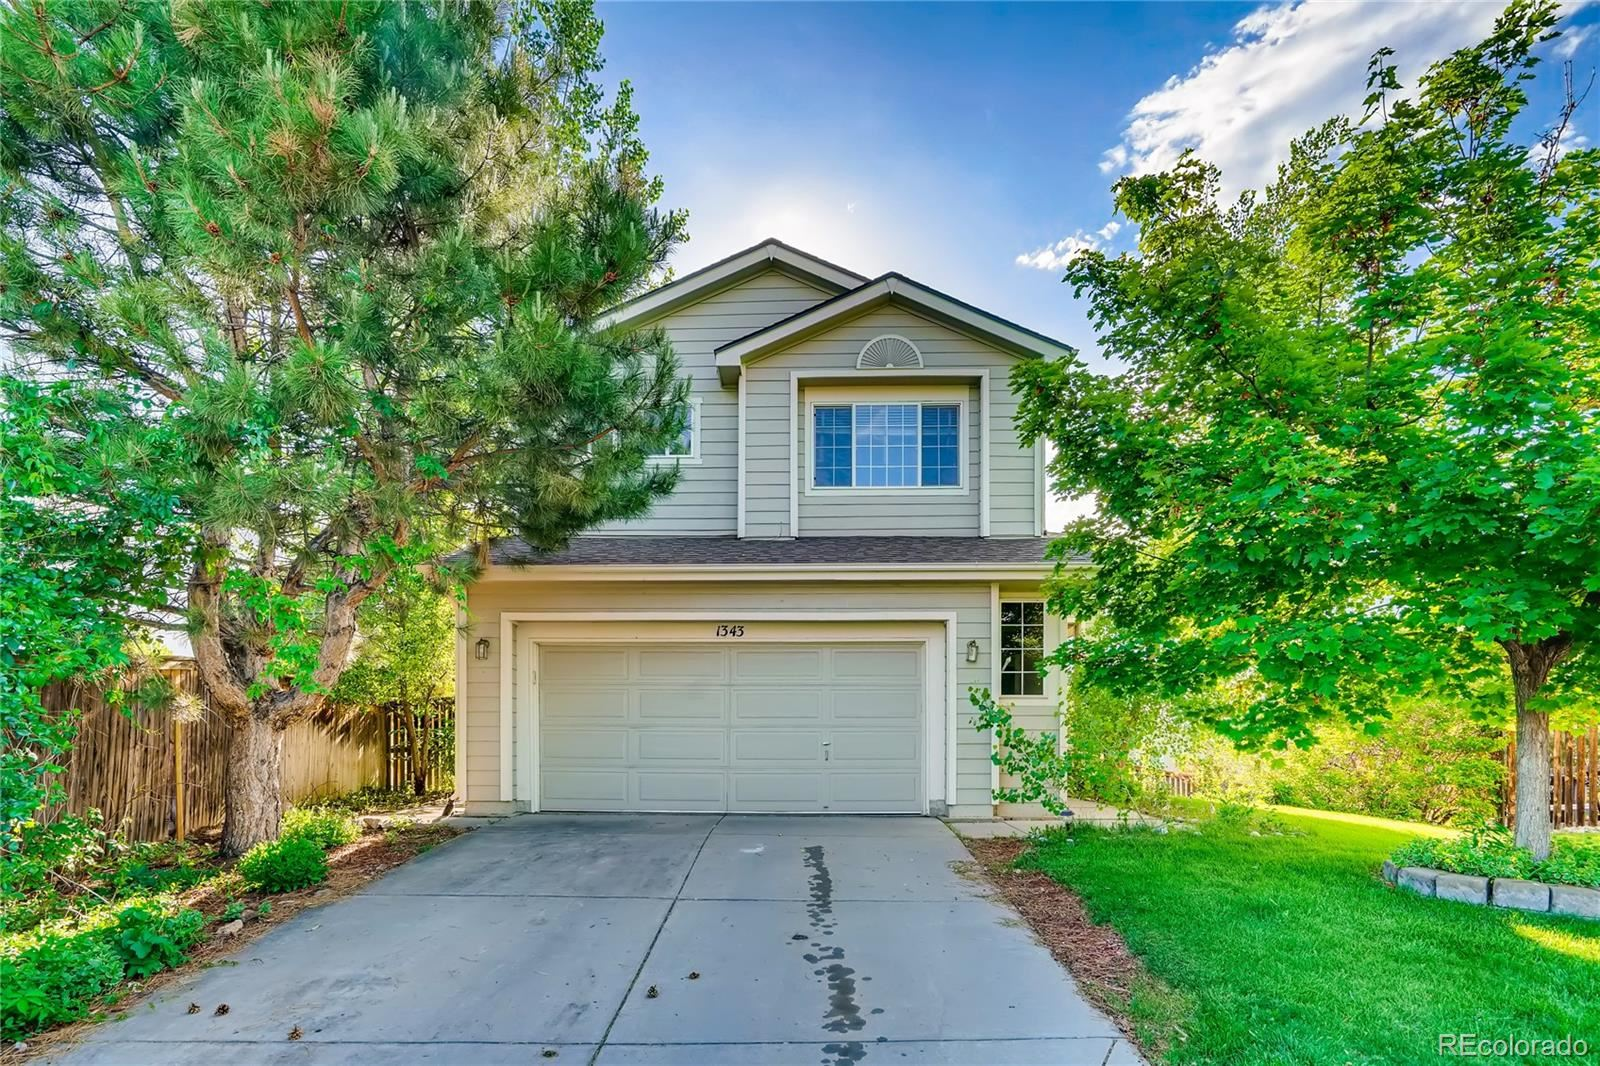 1343  Spotted Owl Way, Highlands Ranch, CO 80129 - #: 1941181